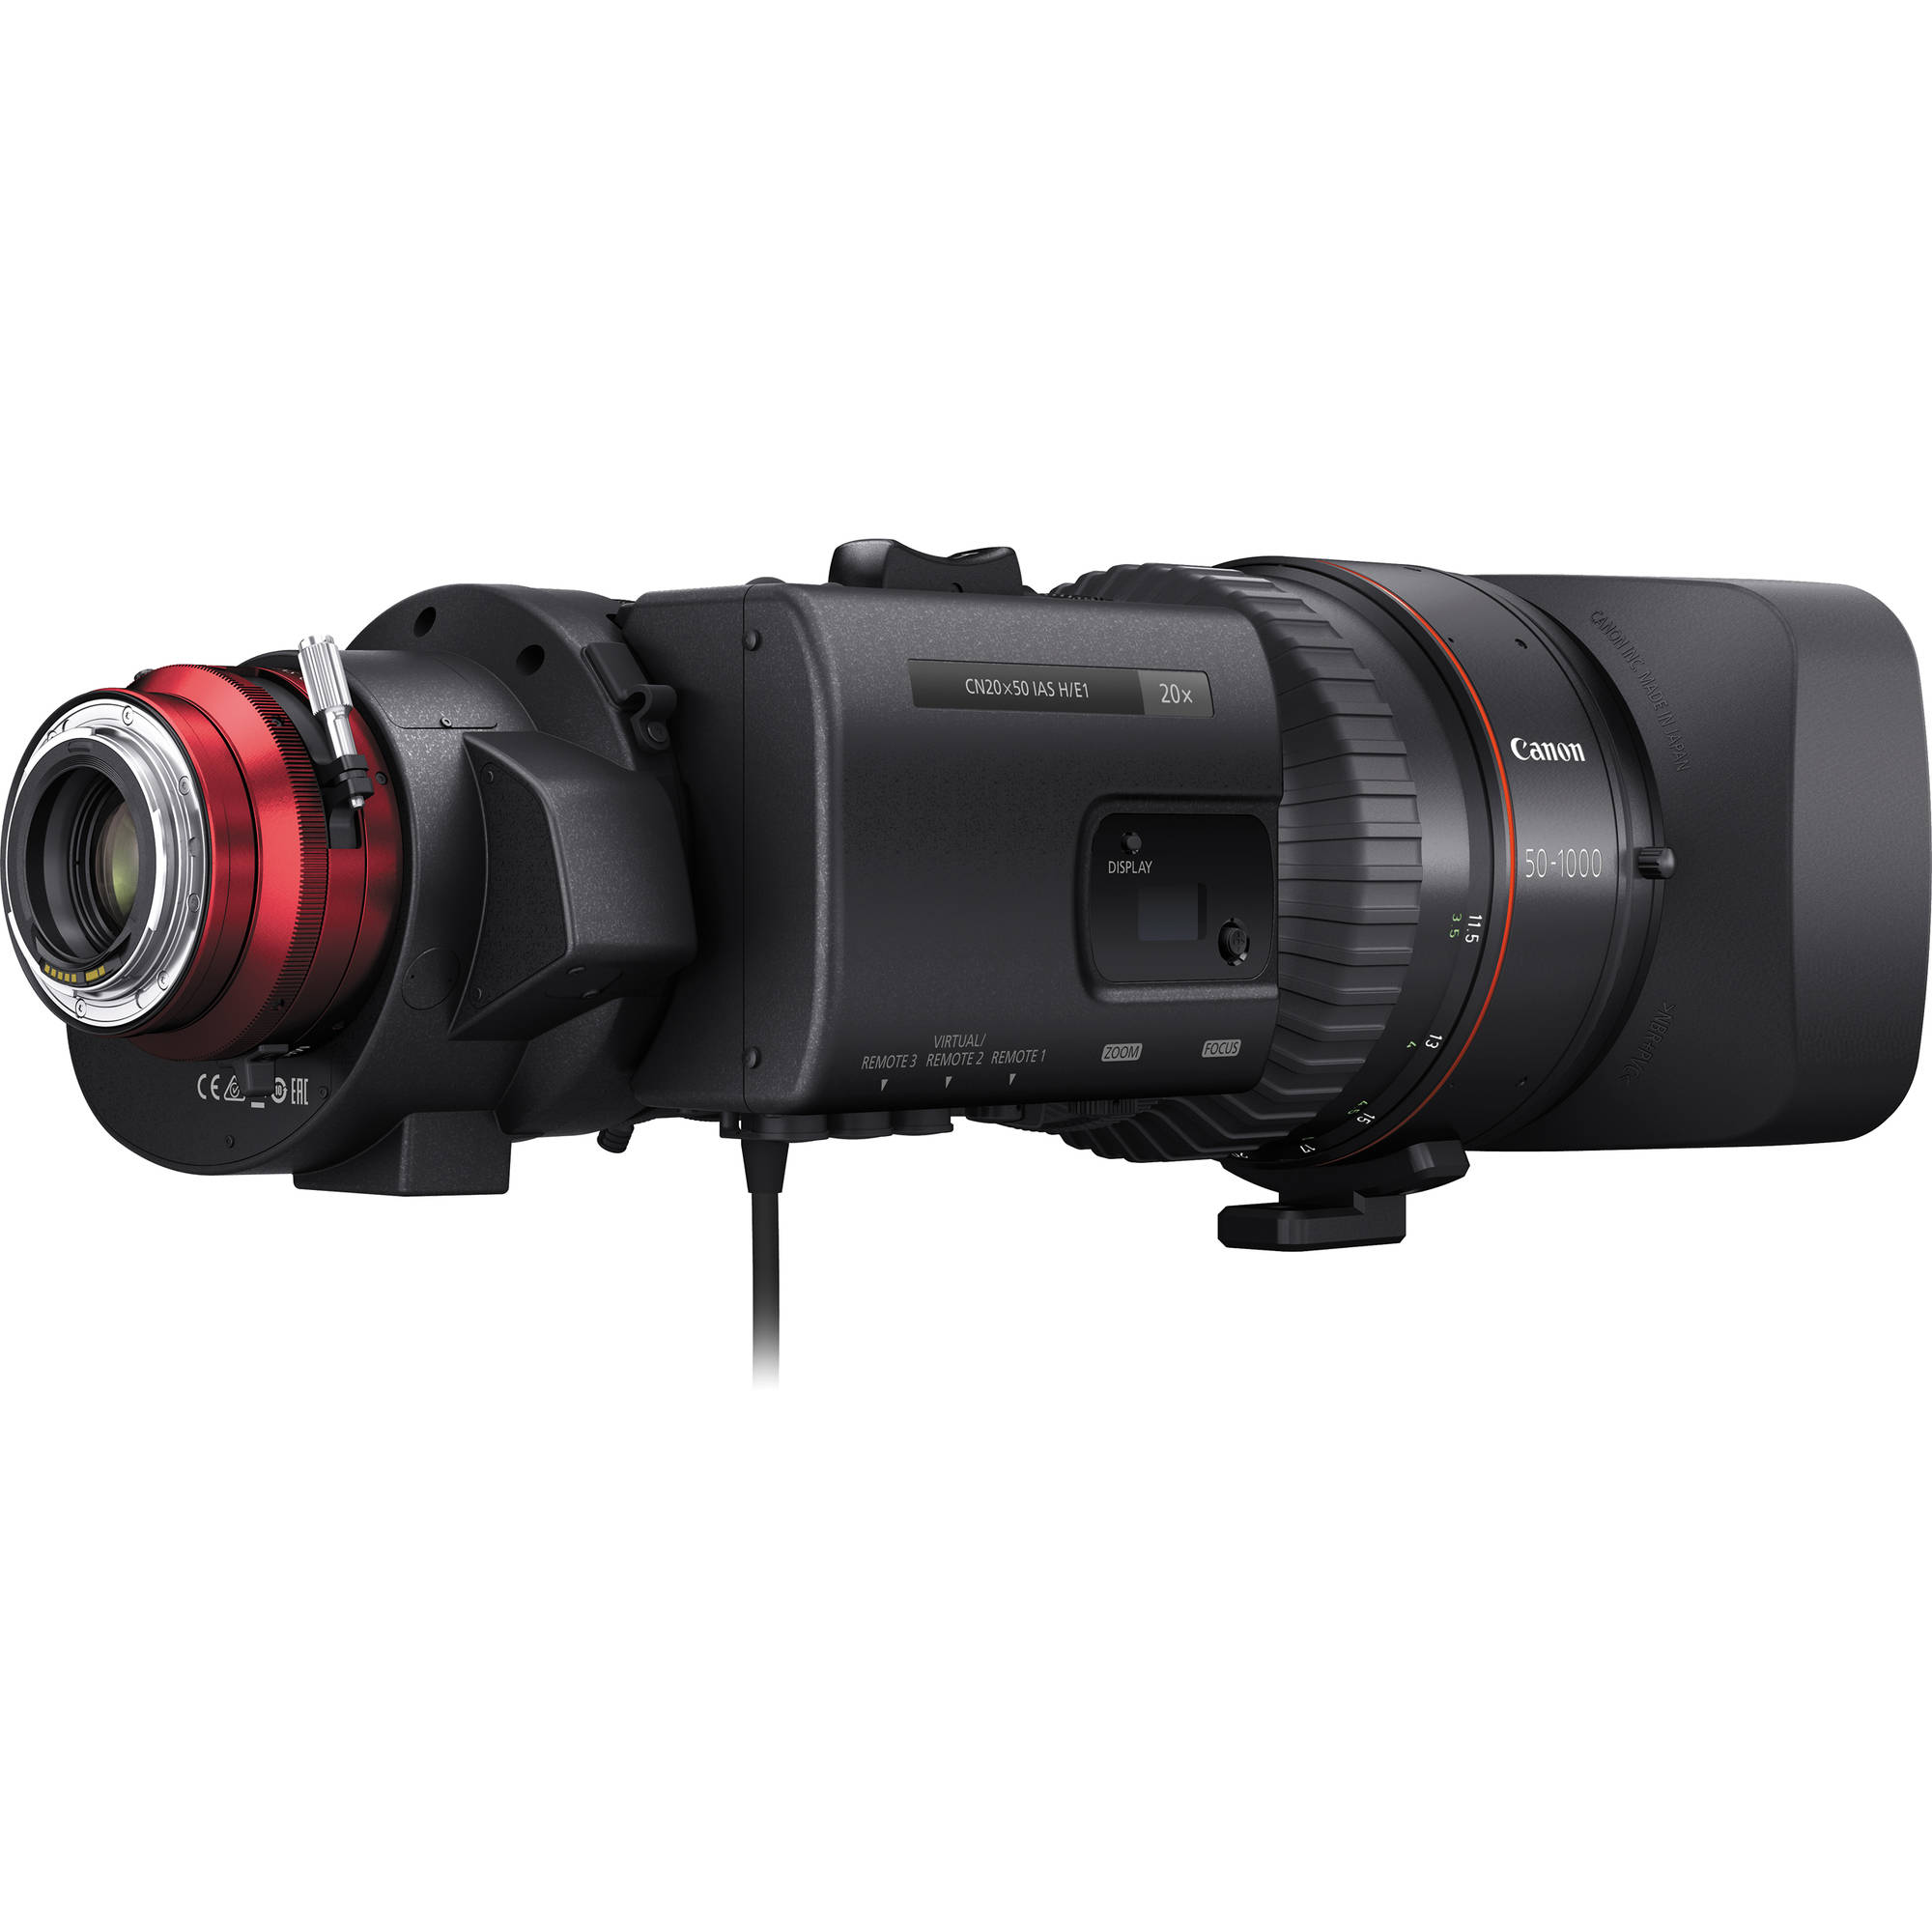 Canon CINE-SERVO 50-1000mm T5 0-8 9 with EF Mount